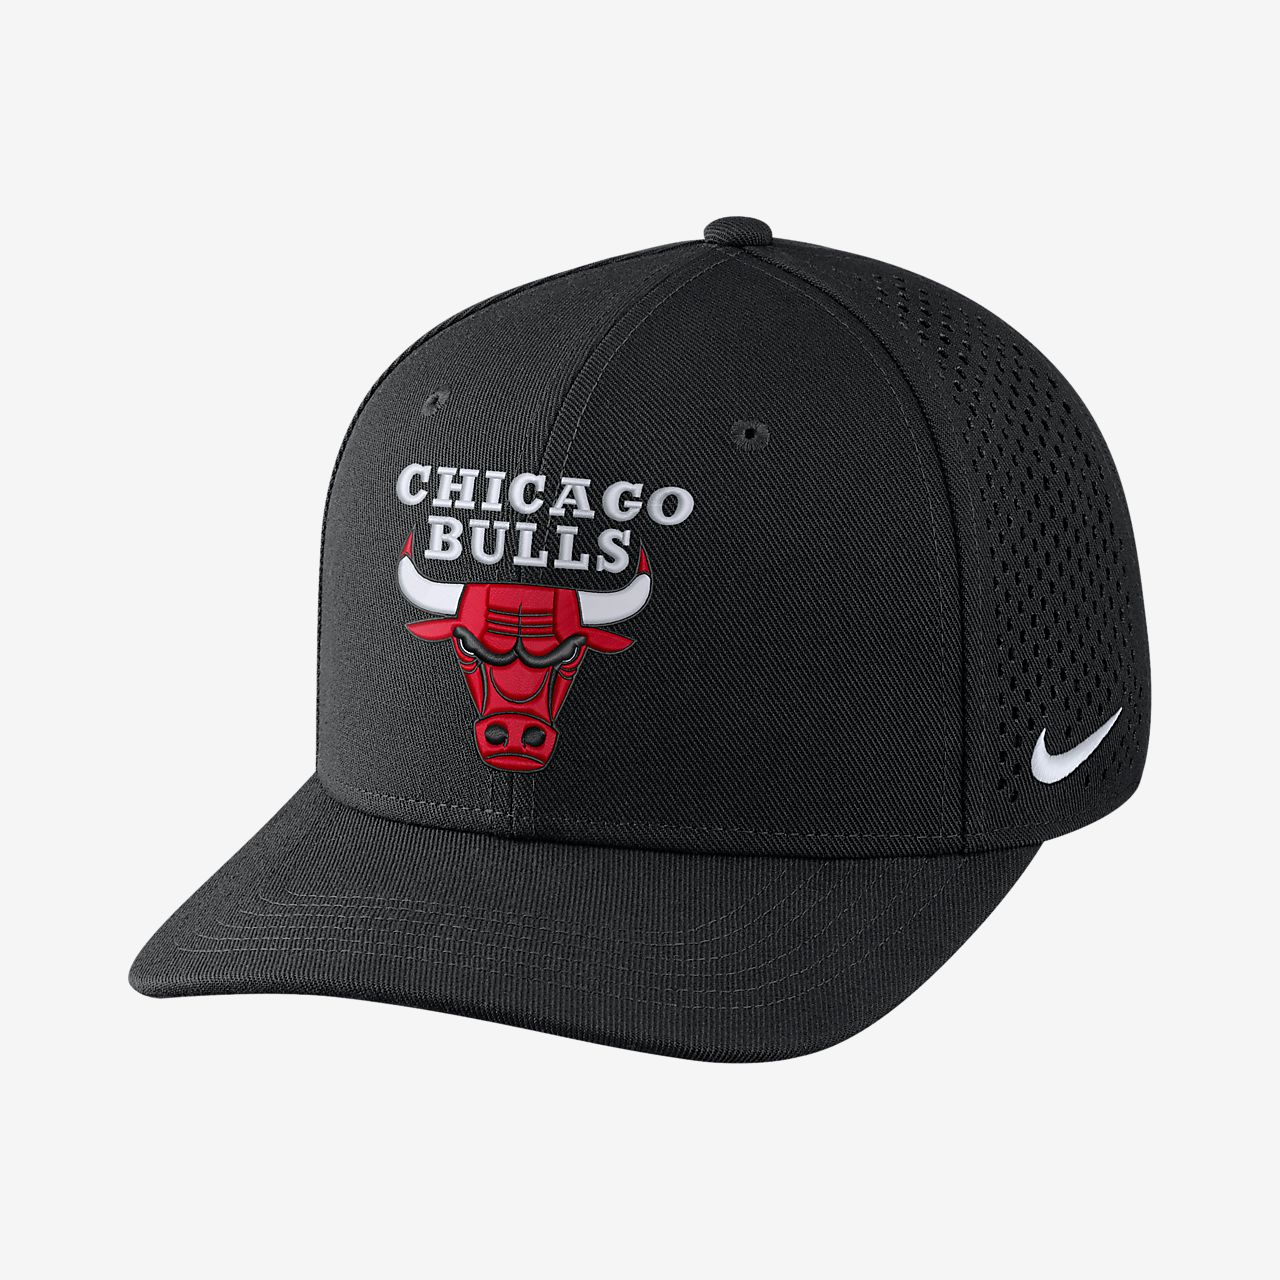 Chicago Bulls Nike AeroBill Classic99 Unisex Adjustable NBA Hat